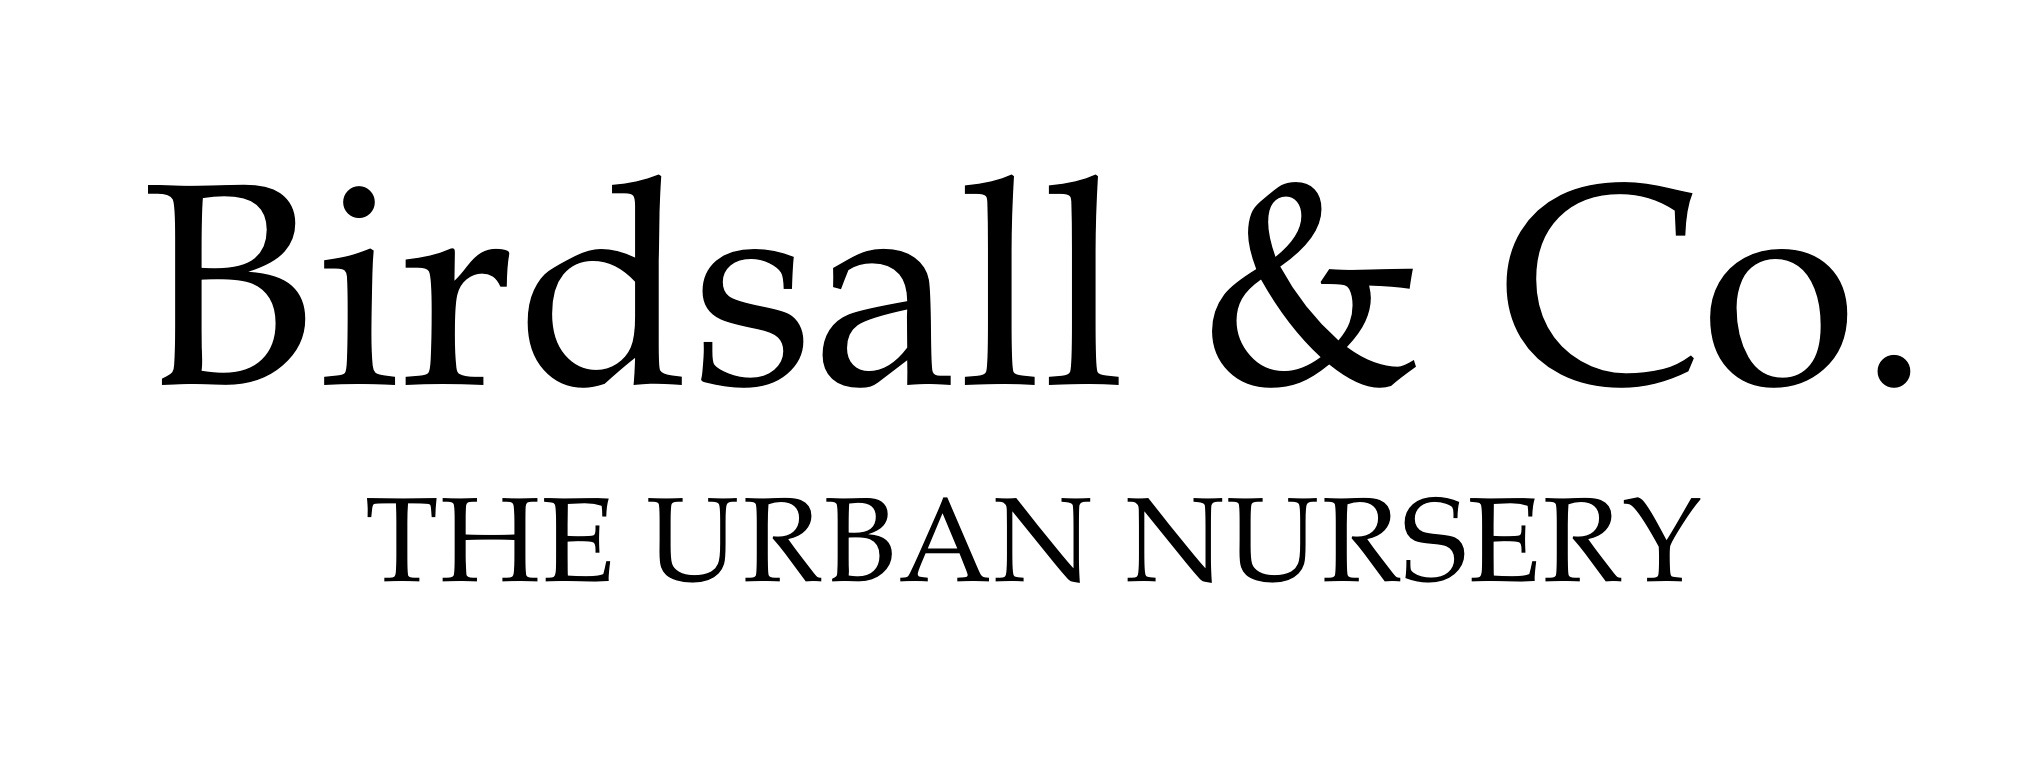 Birdsall & Co. The Urban Nursery Logo